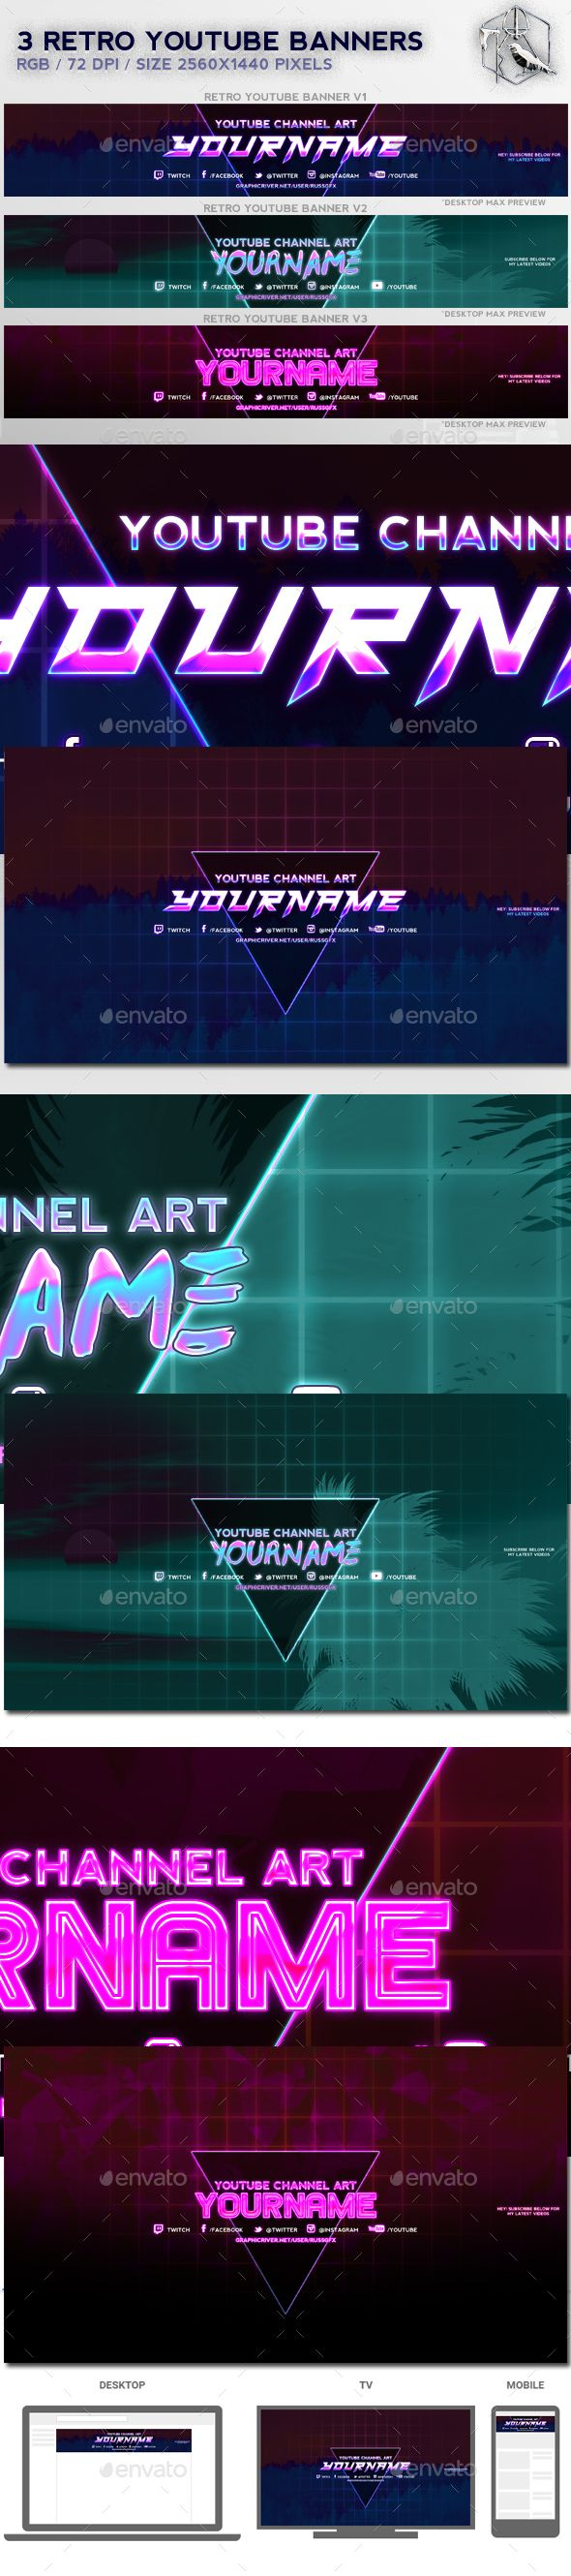 3 Retro Youtube Banners — Photoshop PSD #game #futuristic • Available here ➝ https://graphicriver.net/item/3-retro-youtube-banners/20971041?ref=pxcr